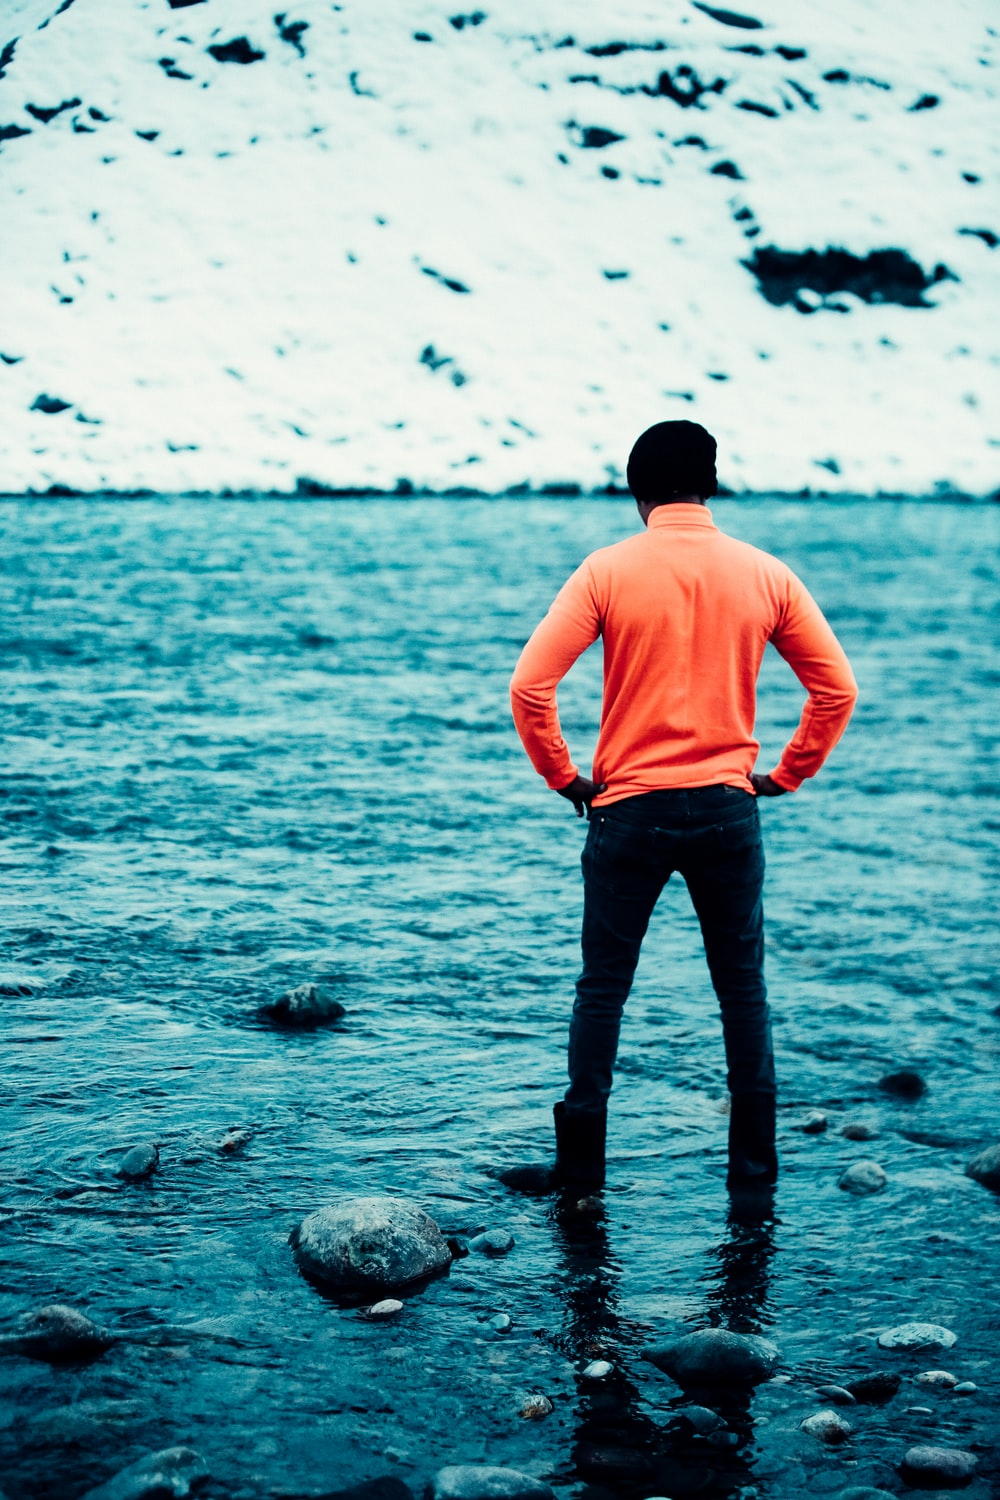 man in pink shirt and black pants standing on rocky shore during daytime